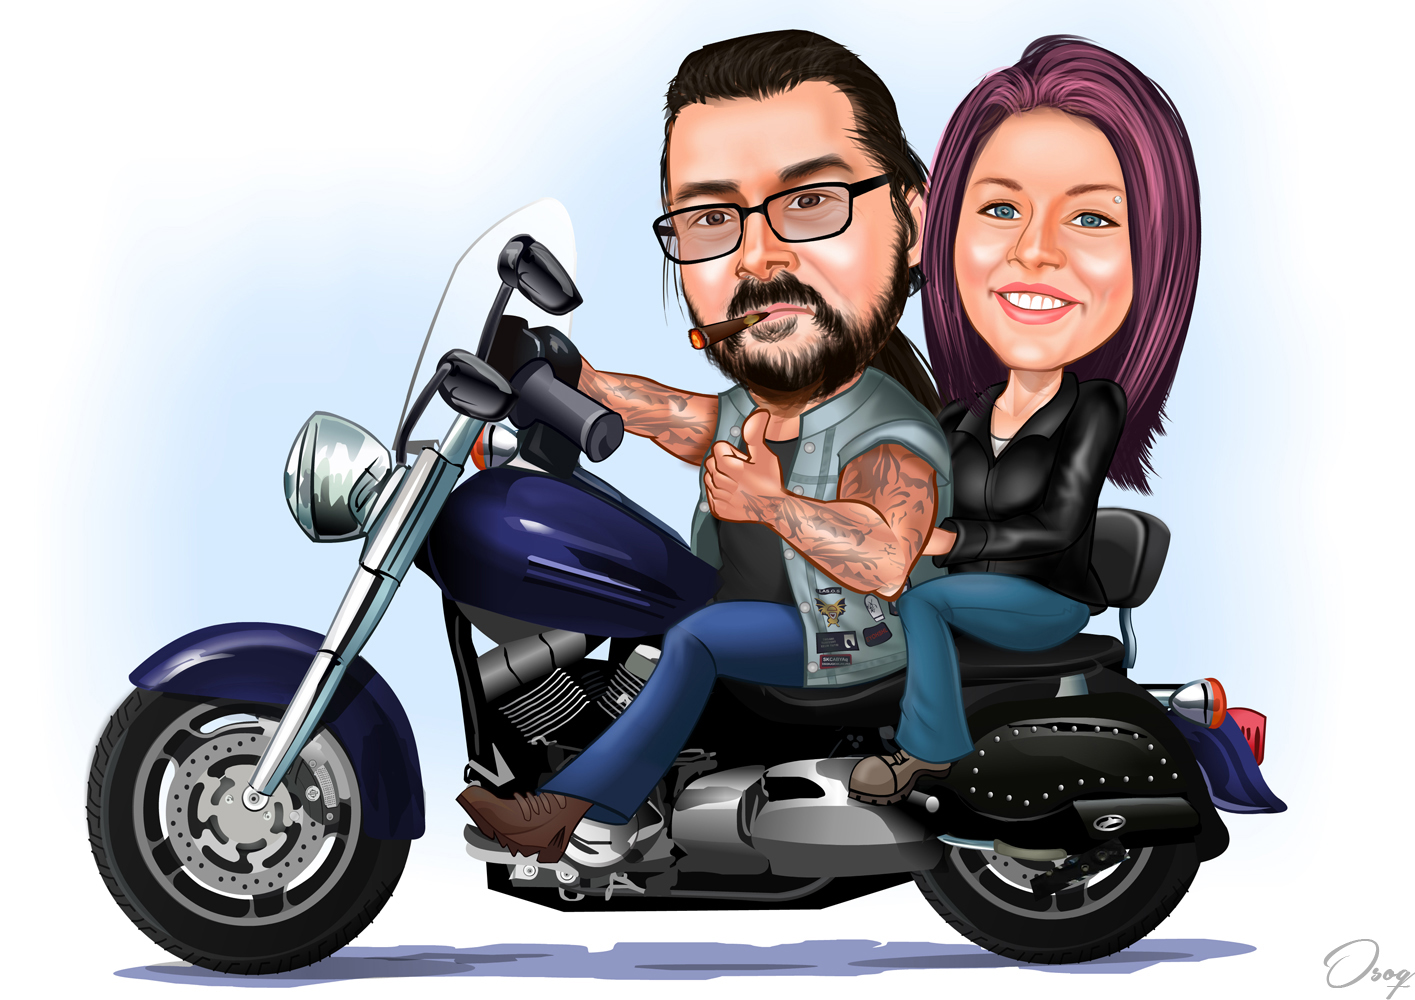 Convert Photo To Cartoon | Osoq.com